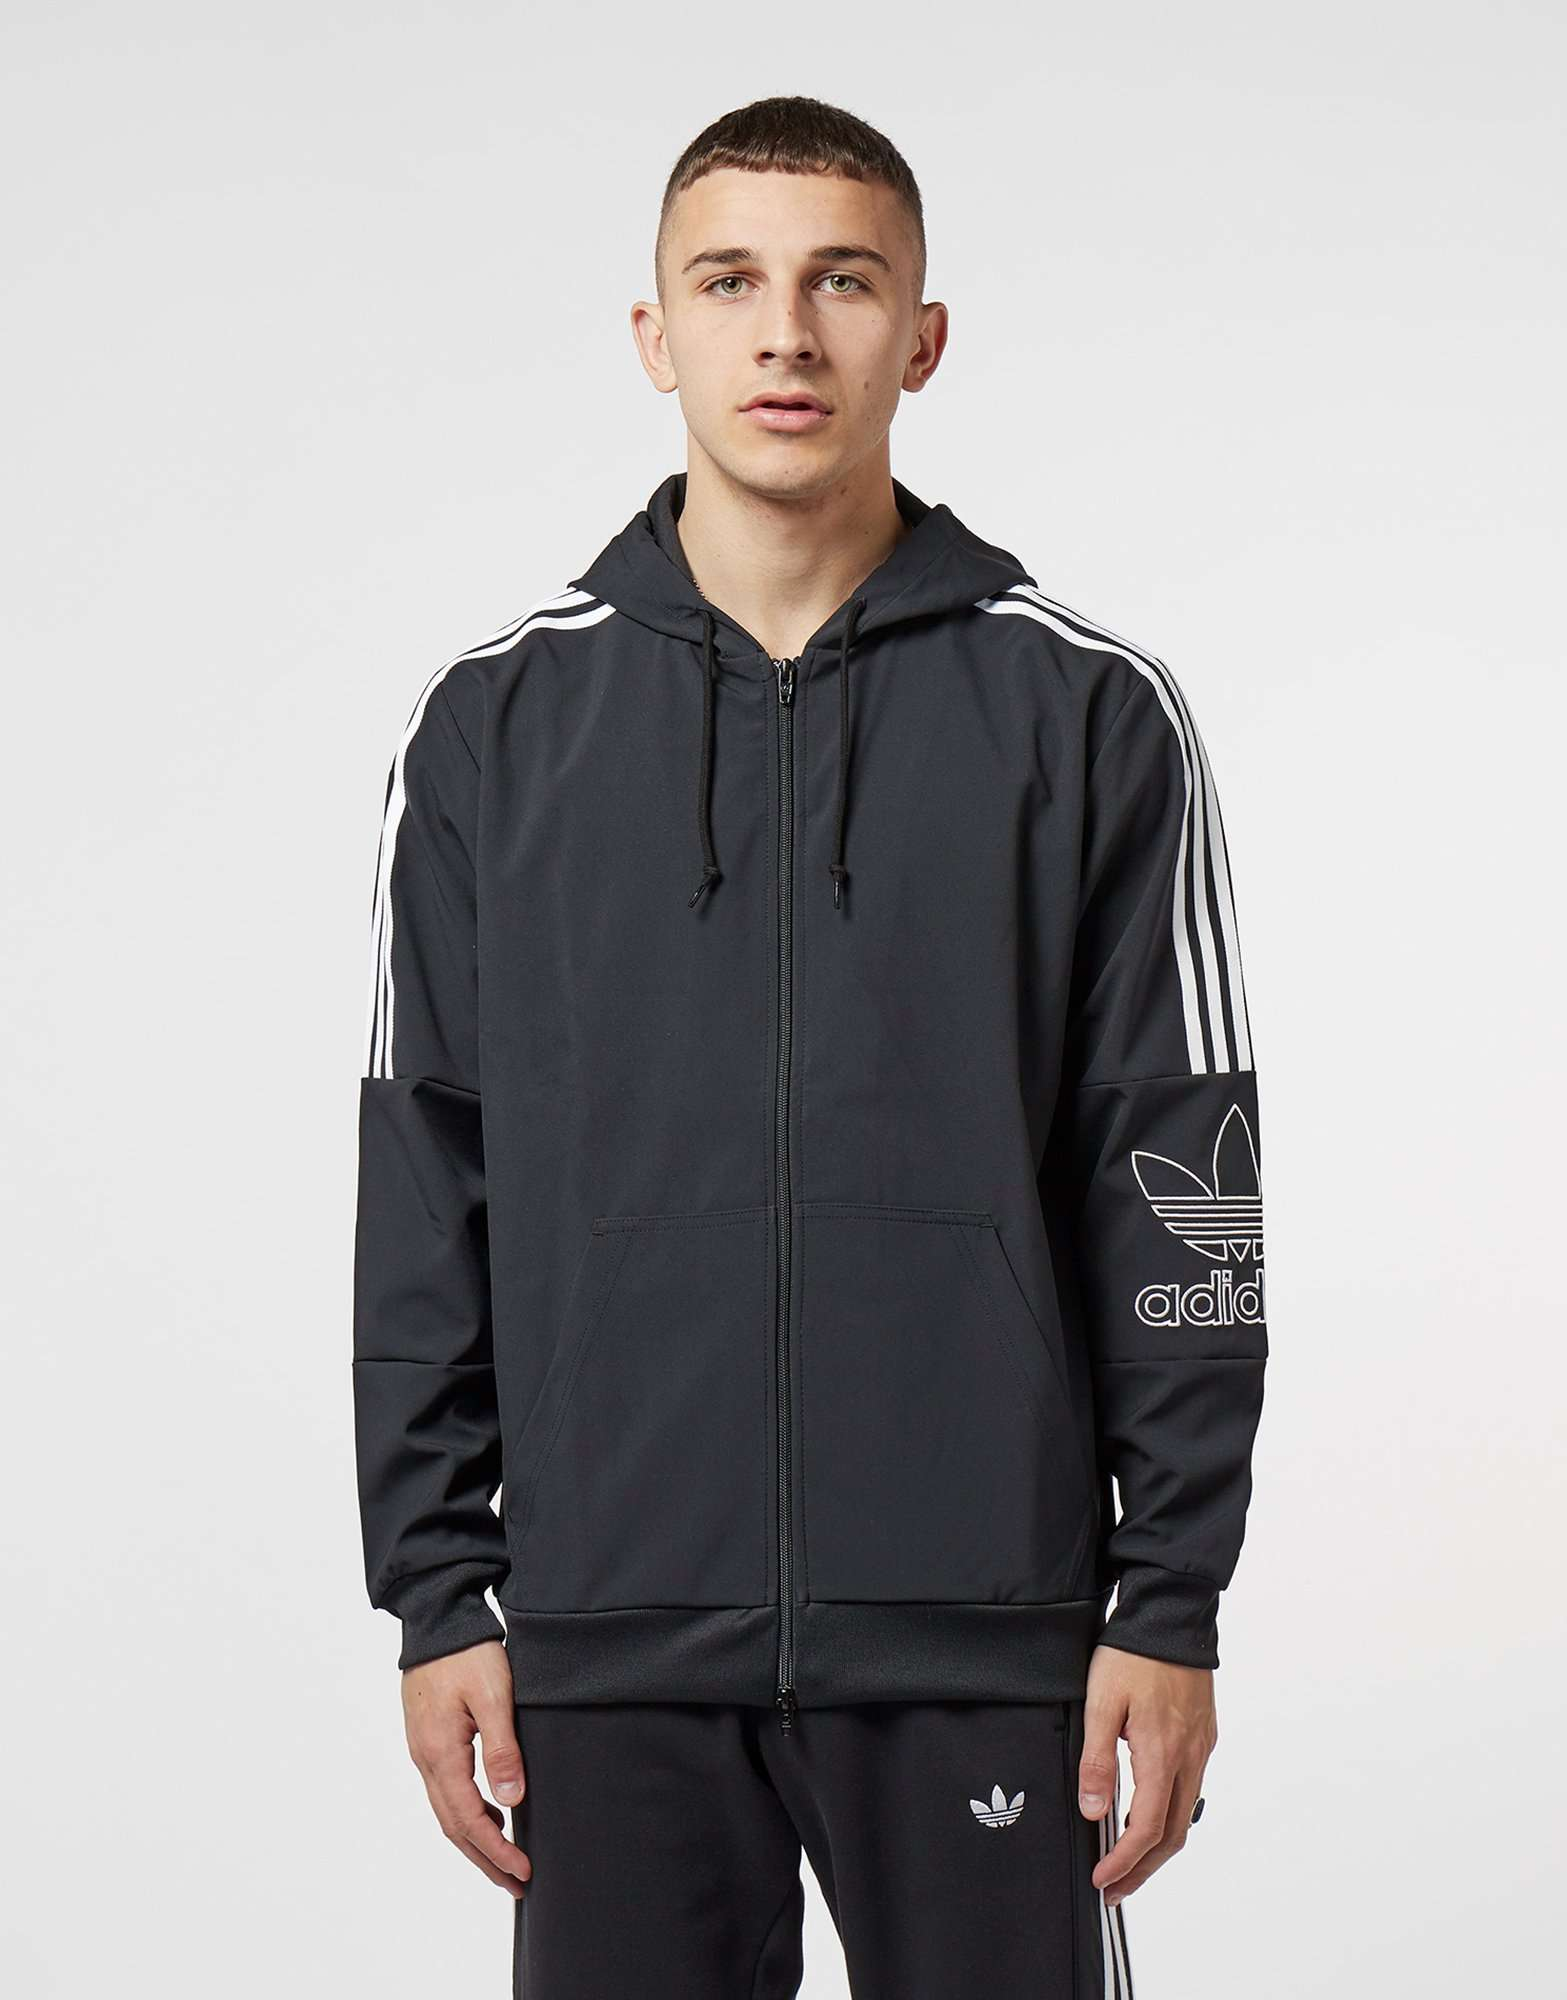 adidas Originals Trefoil Outline 2.0 Full Zip Hoodie